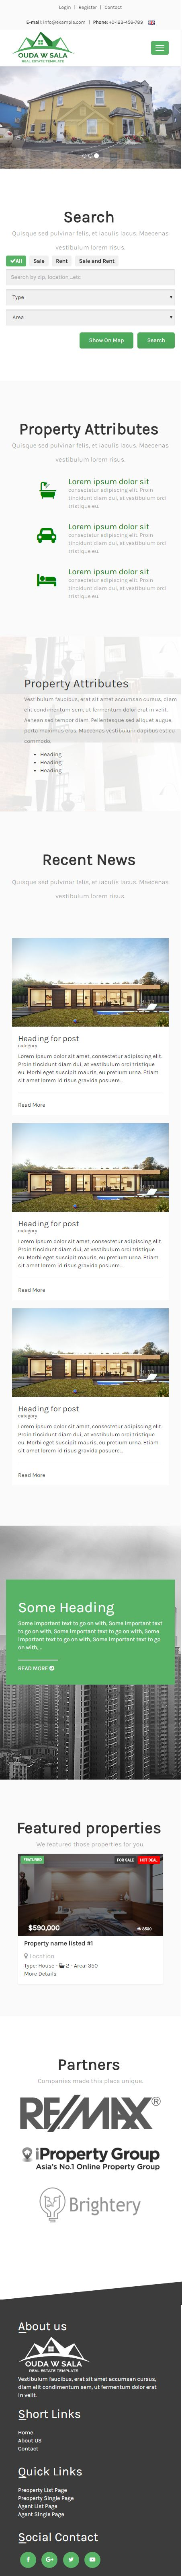 Ouda W Sala - HTML Real Estate Template Screenshot 1